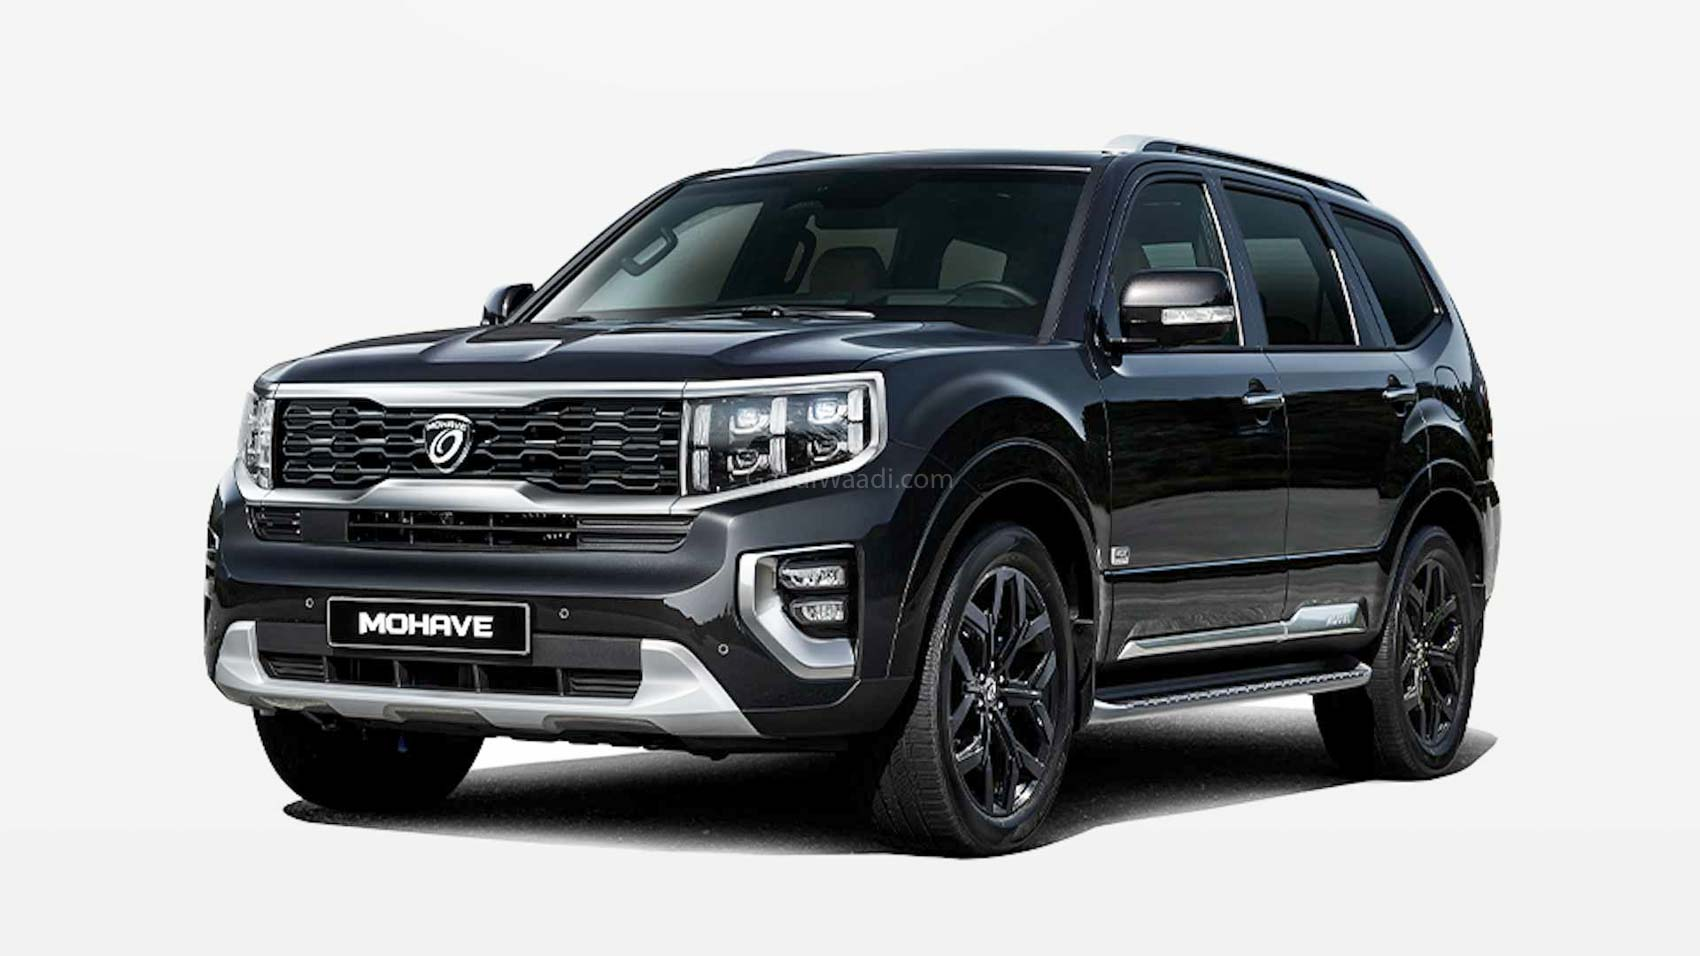 Kia Mohave Gravity (Range-topping Variant) Launched in South Korea